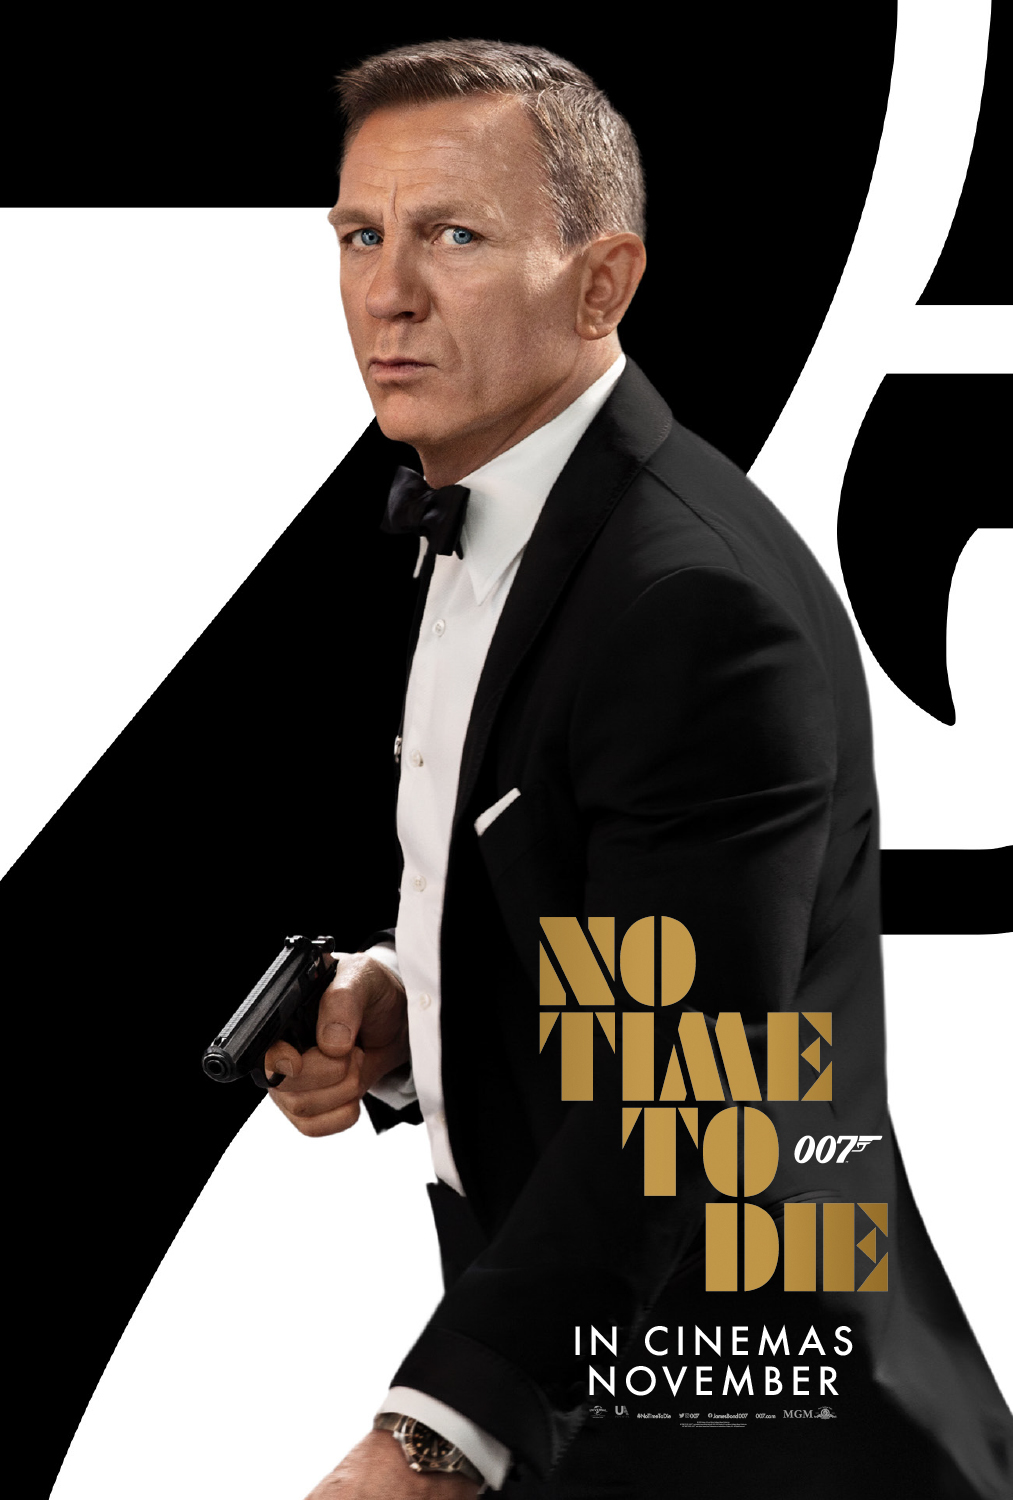 NTTD_DIGTAL_1SHEET_ICONIC_TUX_UK